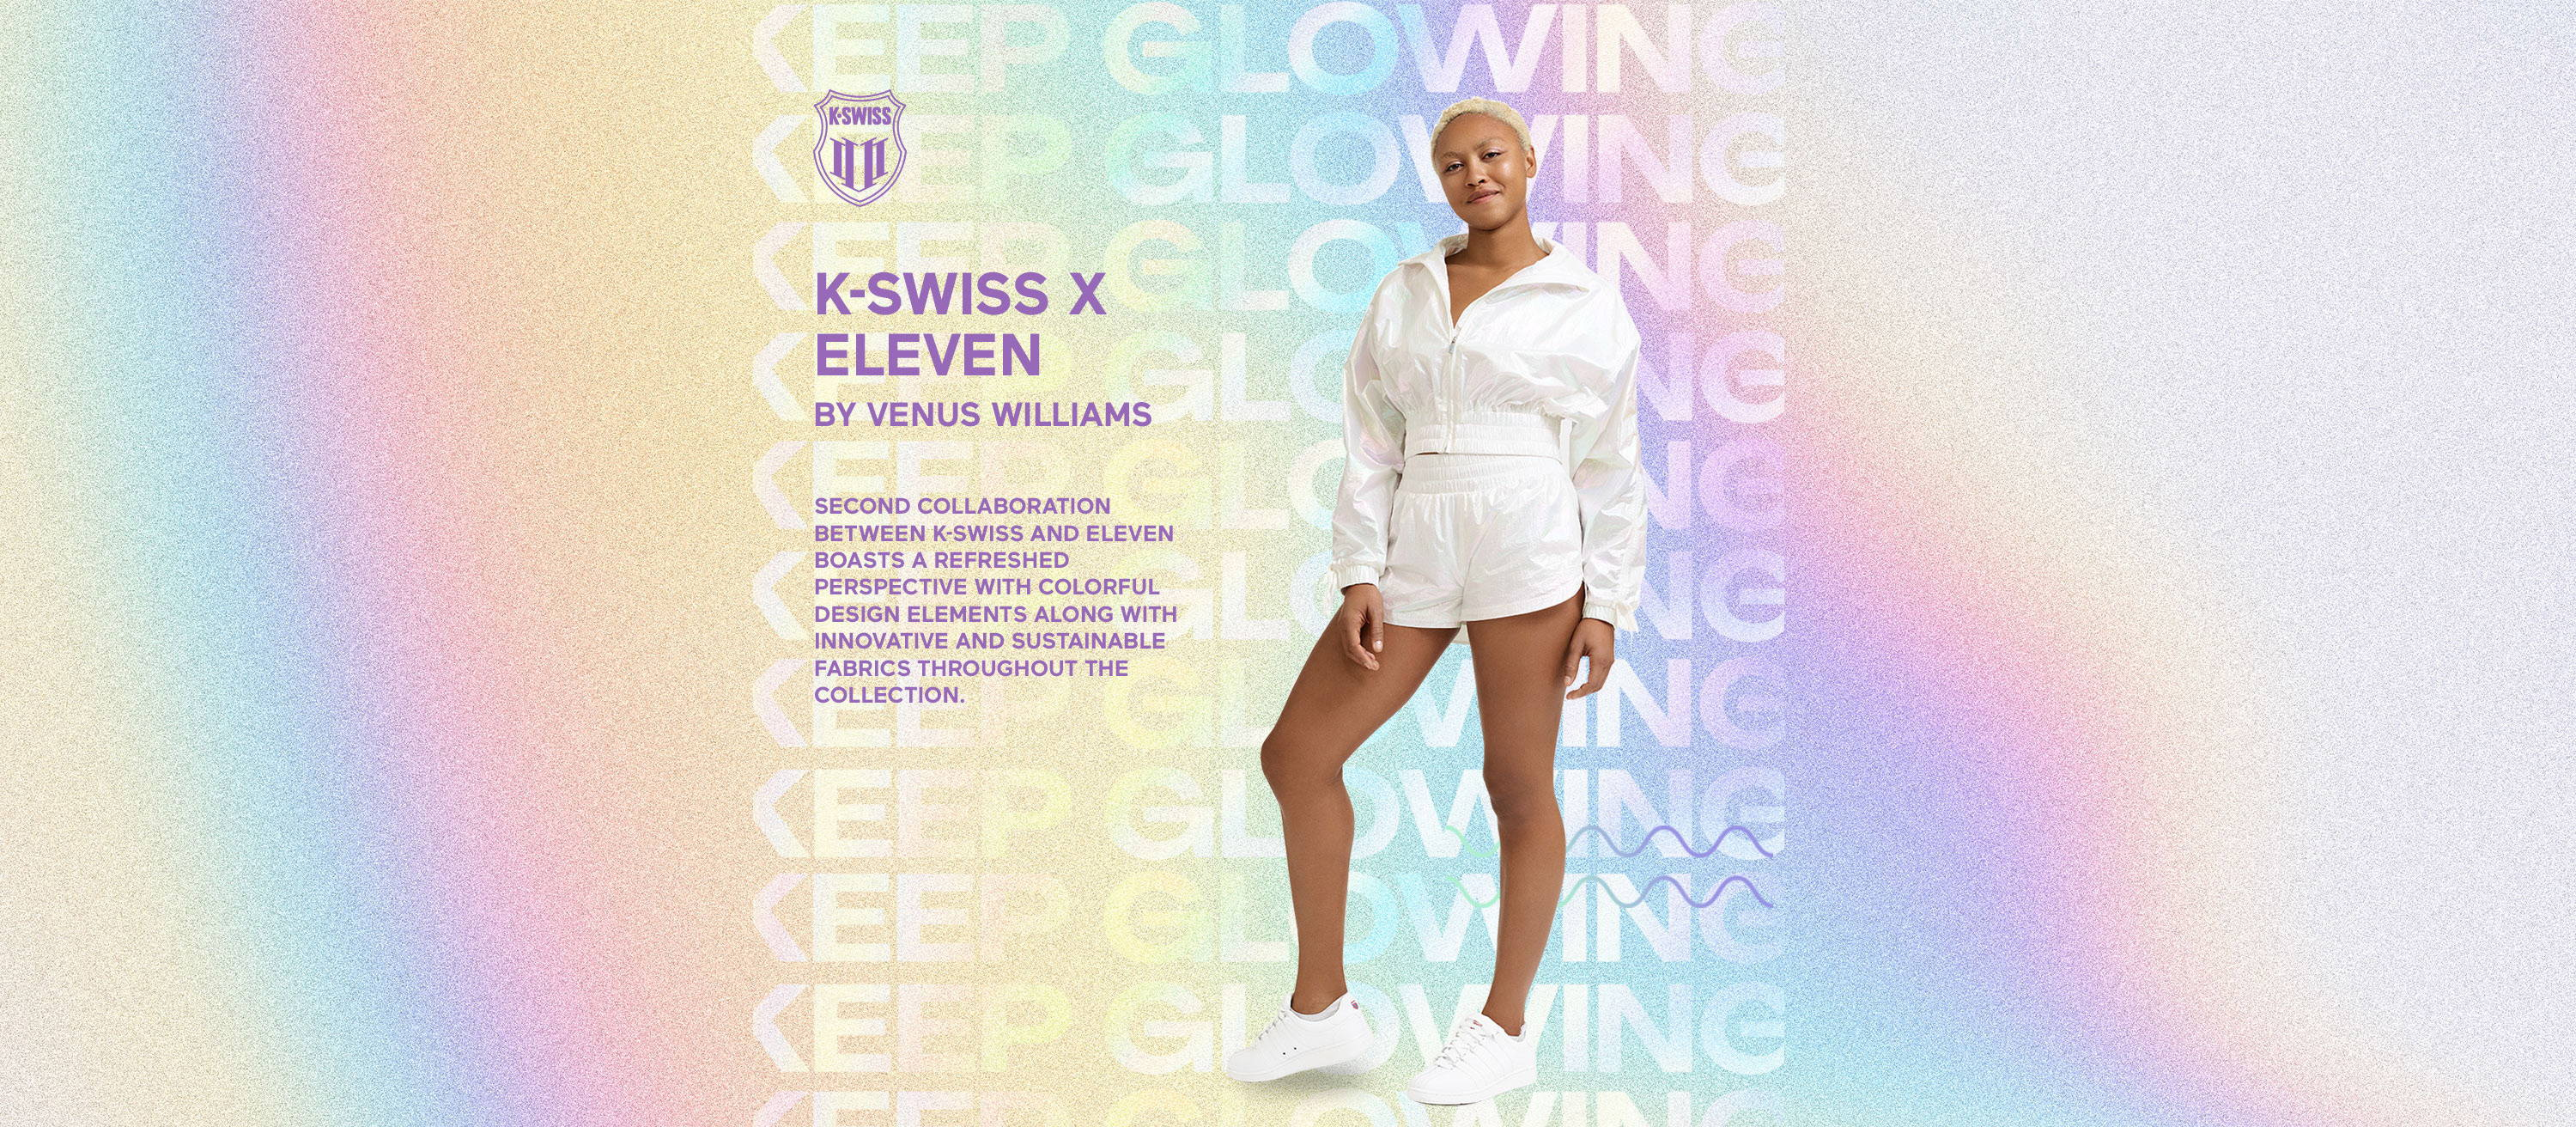 K-Swiss ElEven Logo. K-Swiss X Eleven by Venus Williams. Second collaboration between K-Swiss and Eleven boasts a fefreshed perspective with colorful design elements along with innovative and sustainable fabrics throughout the collection. Model wearing new collaborations styles.